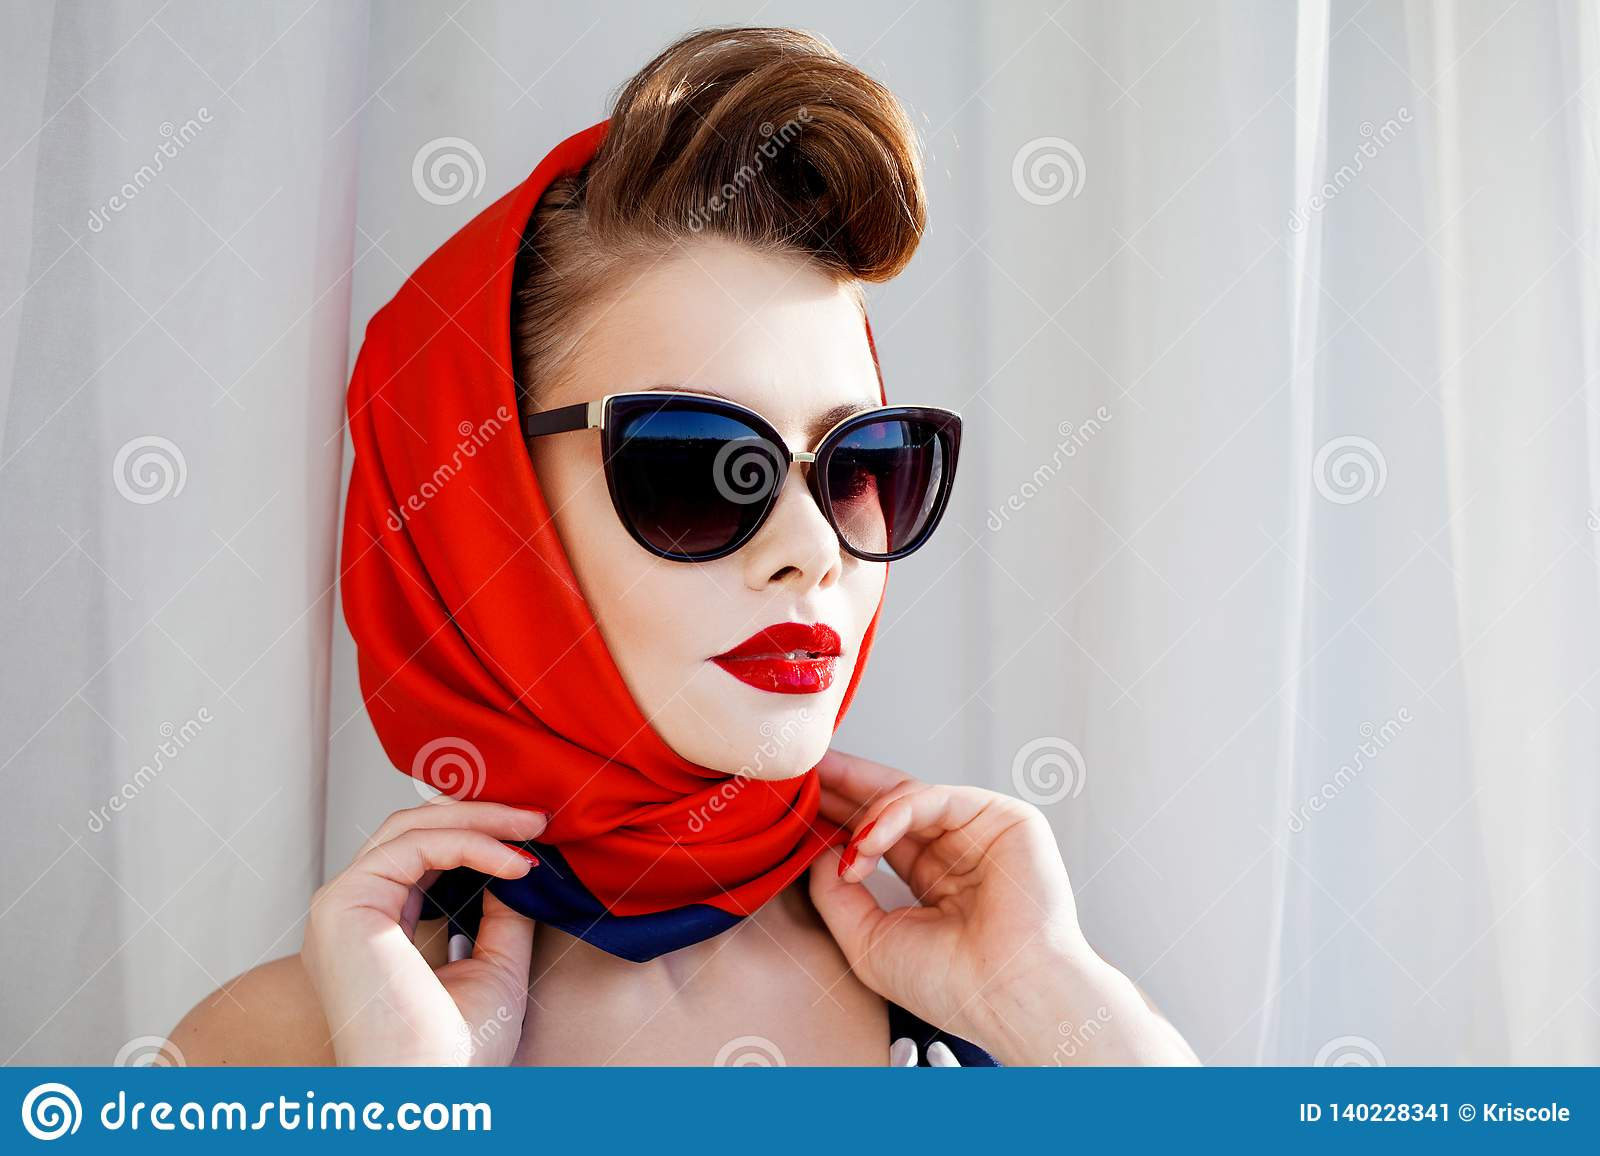 ae0181942bf49 Young Beautiful Woman With Red Lipstick And A Headscarf. Stock Image ...